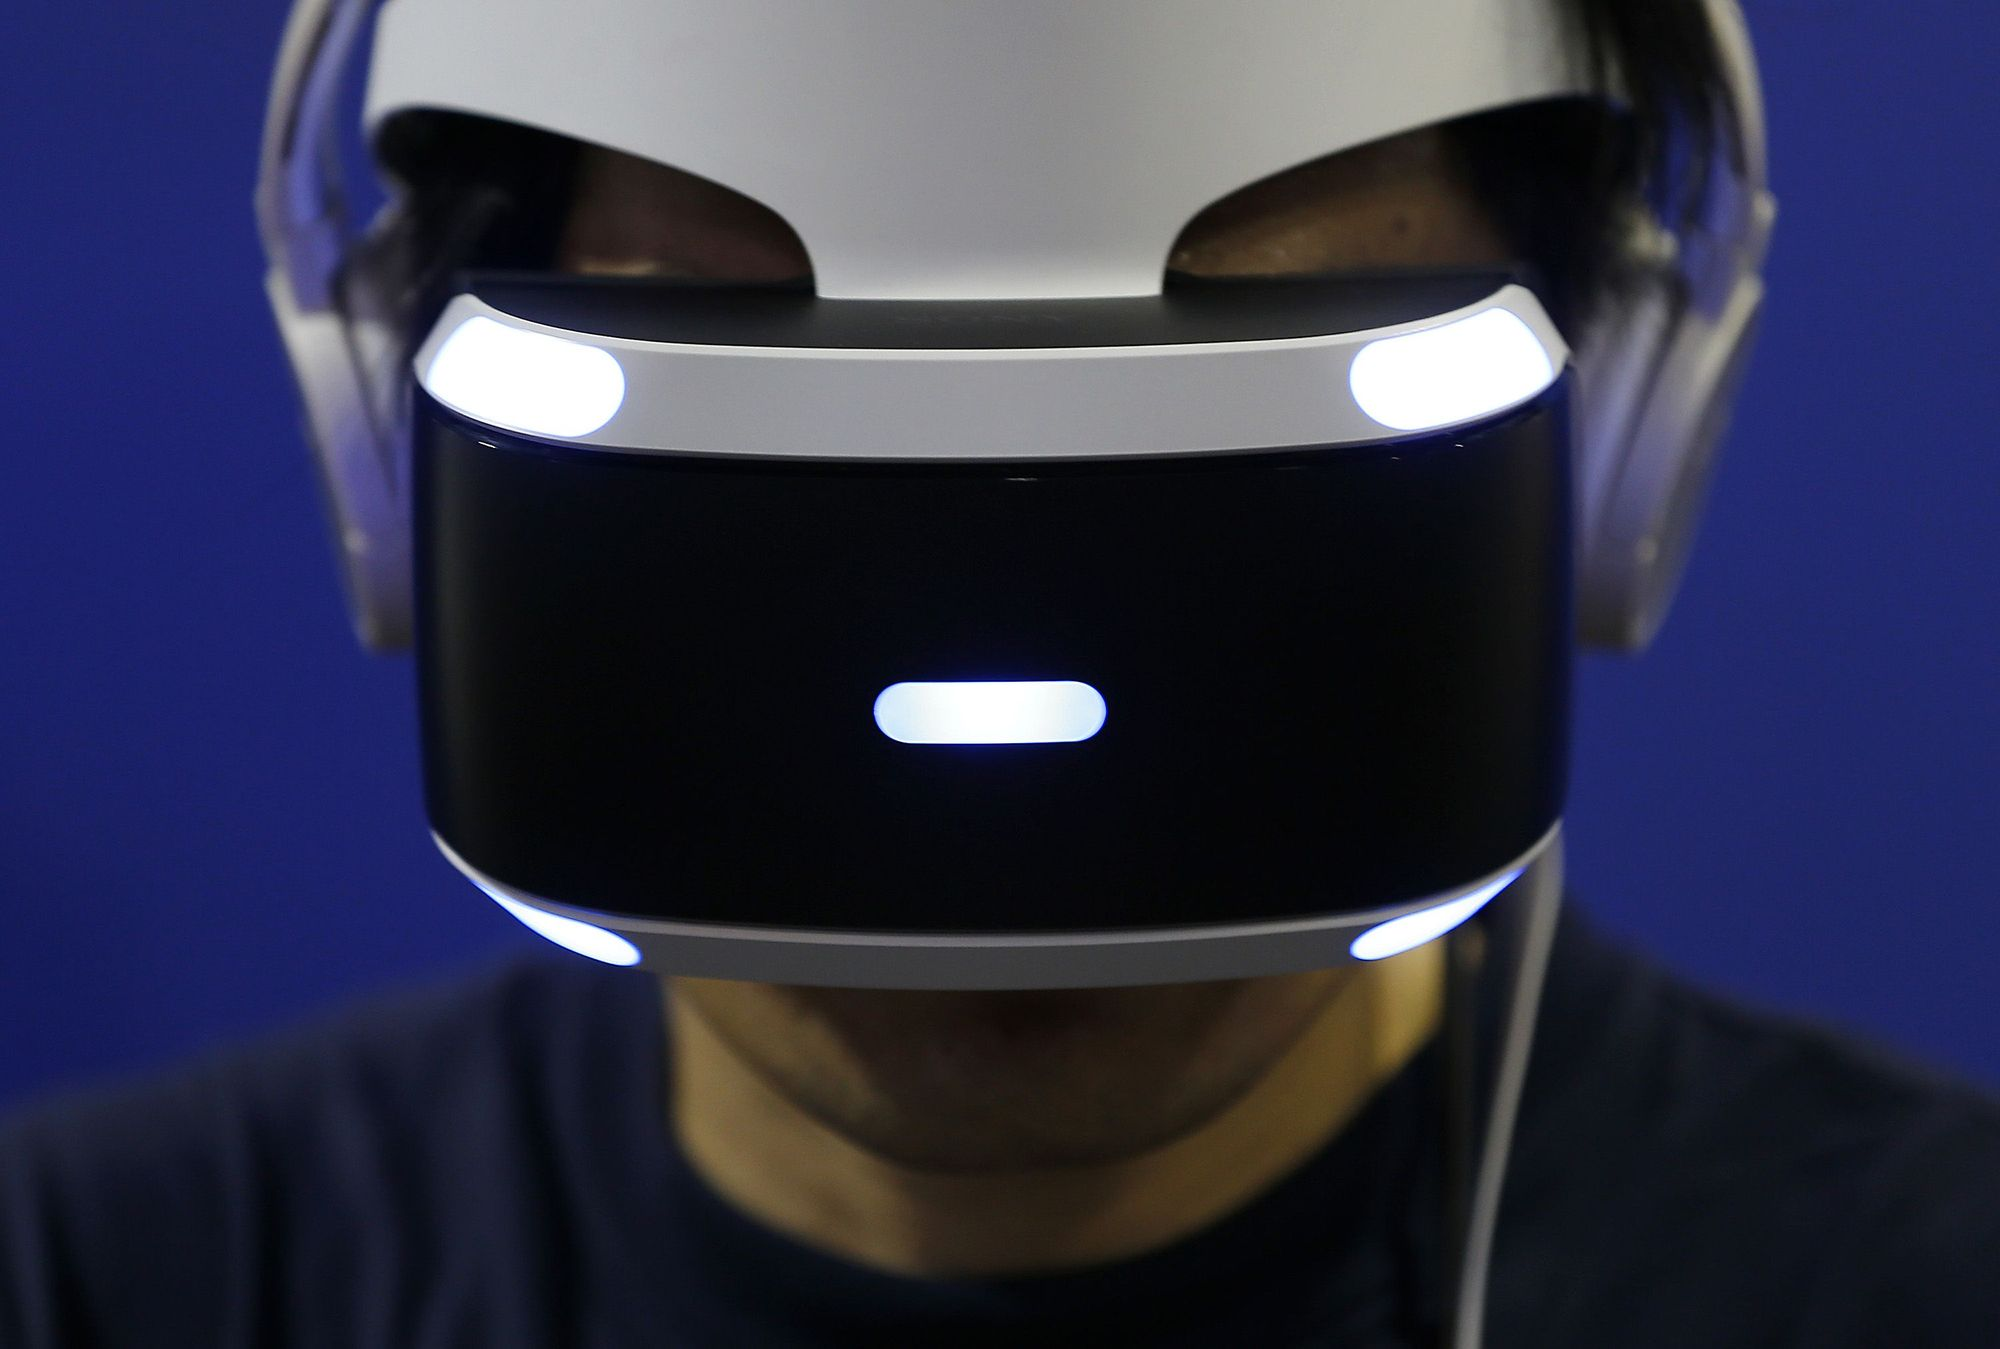 Sony's Developer Problem Could Spell Trouble for PSVR2